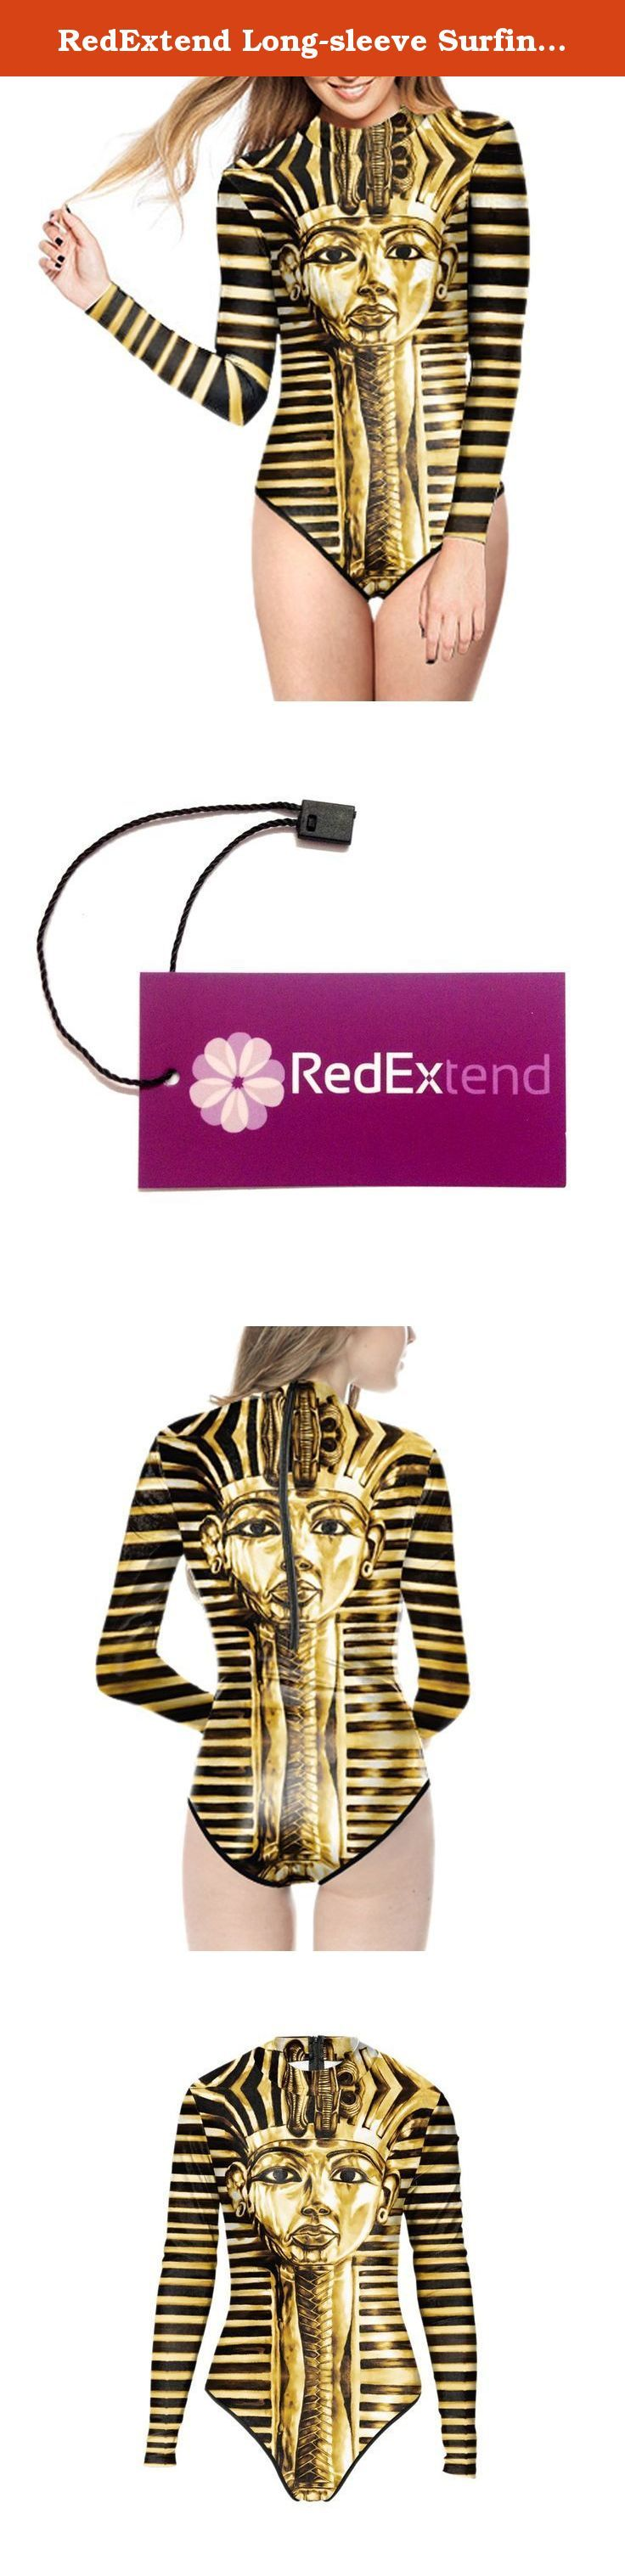 RedExtend Long-sleeve Surfing Suit Sun Protection Monokini Swimwear Bathing Suit. Our brand 'RedExtend' has been registered in US by USPTO. It is protected by laws in US. Please do not attempt to infringe our right otherwise legal action will be taken. Registration Number: 4719976. The package contains 'RedExtend' Tag 1. 100% Brand New with RedExtend Tag in each package. 2. Stretchy polyester, Lightweight, Breathable and durable, Good scalability and fastness, Soft and comfortable fit. 3....